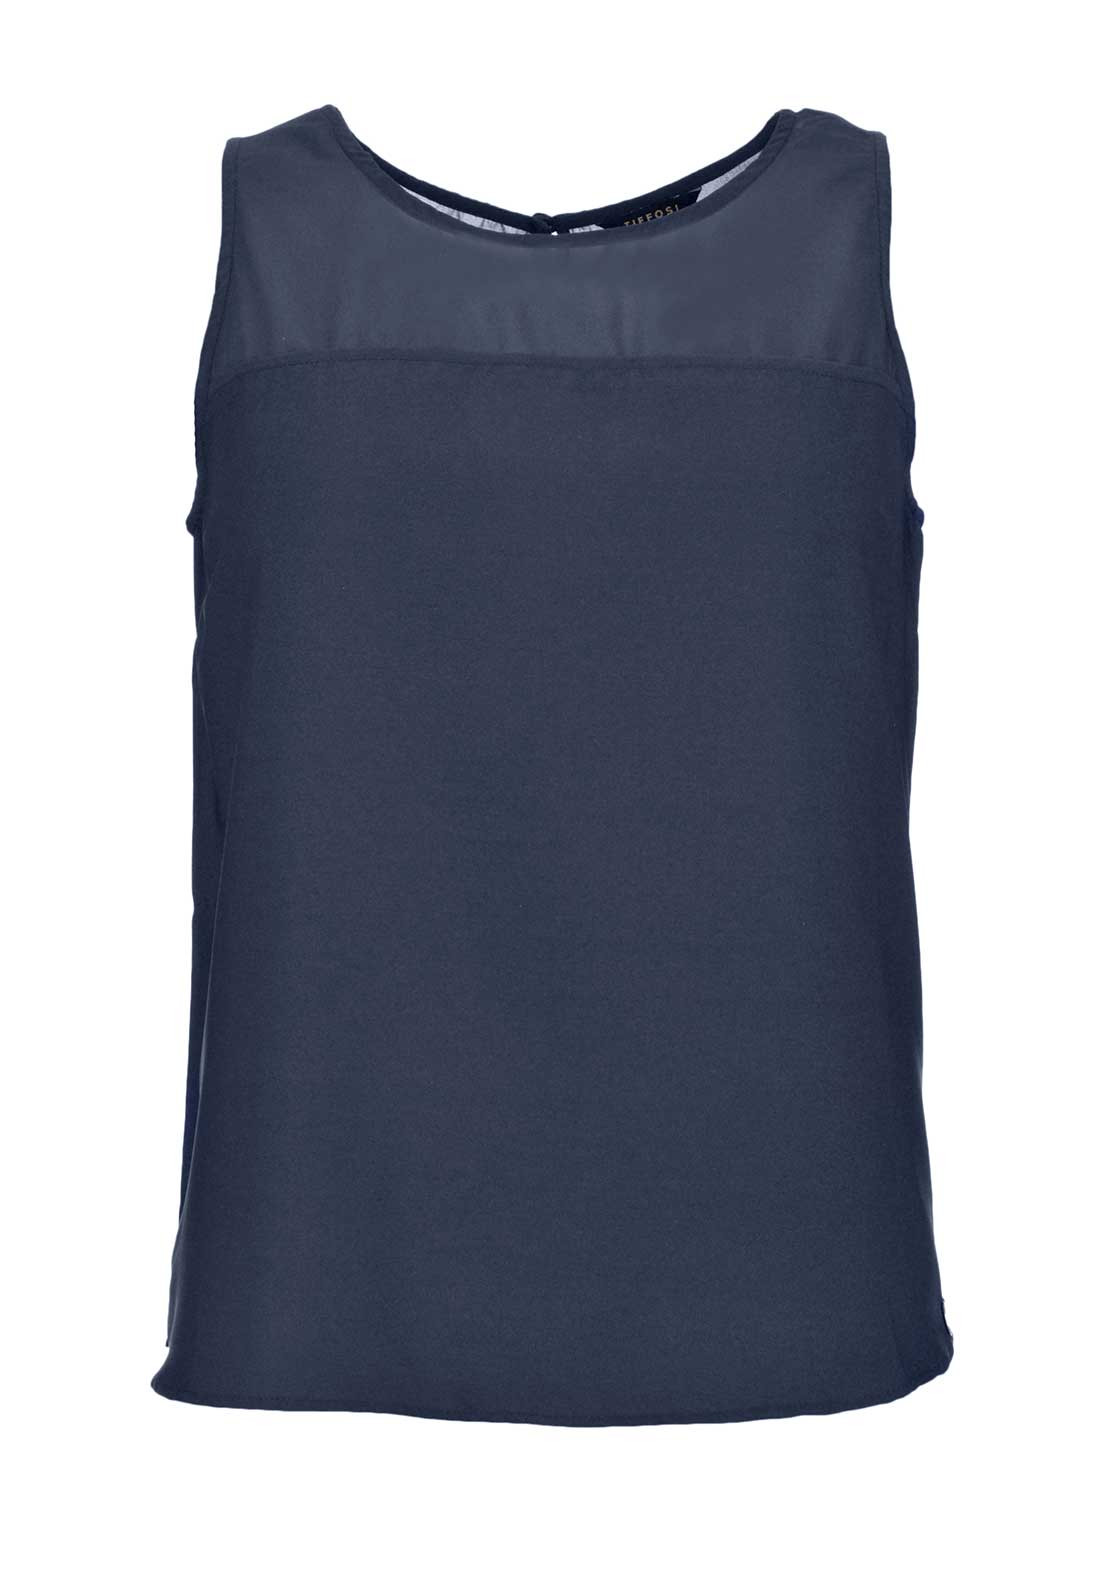 Tiffosi Maureen Sleeveless Chiffon Top, Midnight Navy